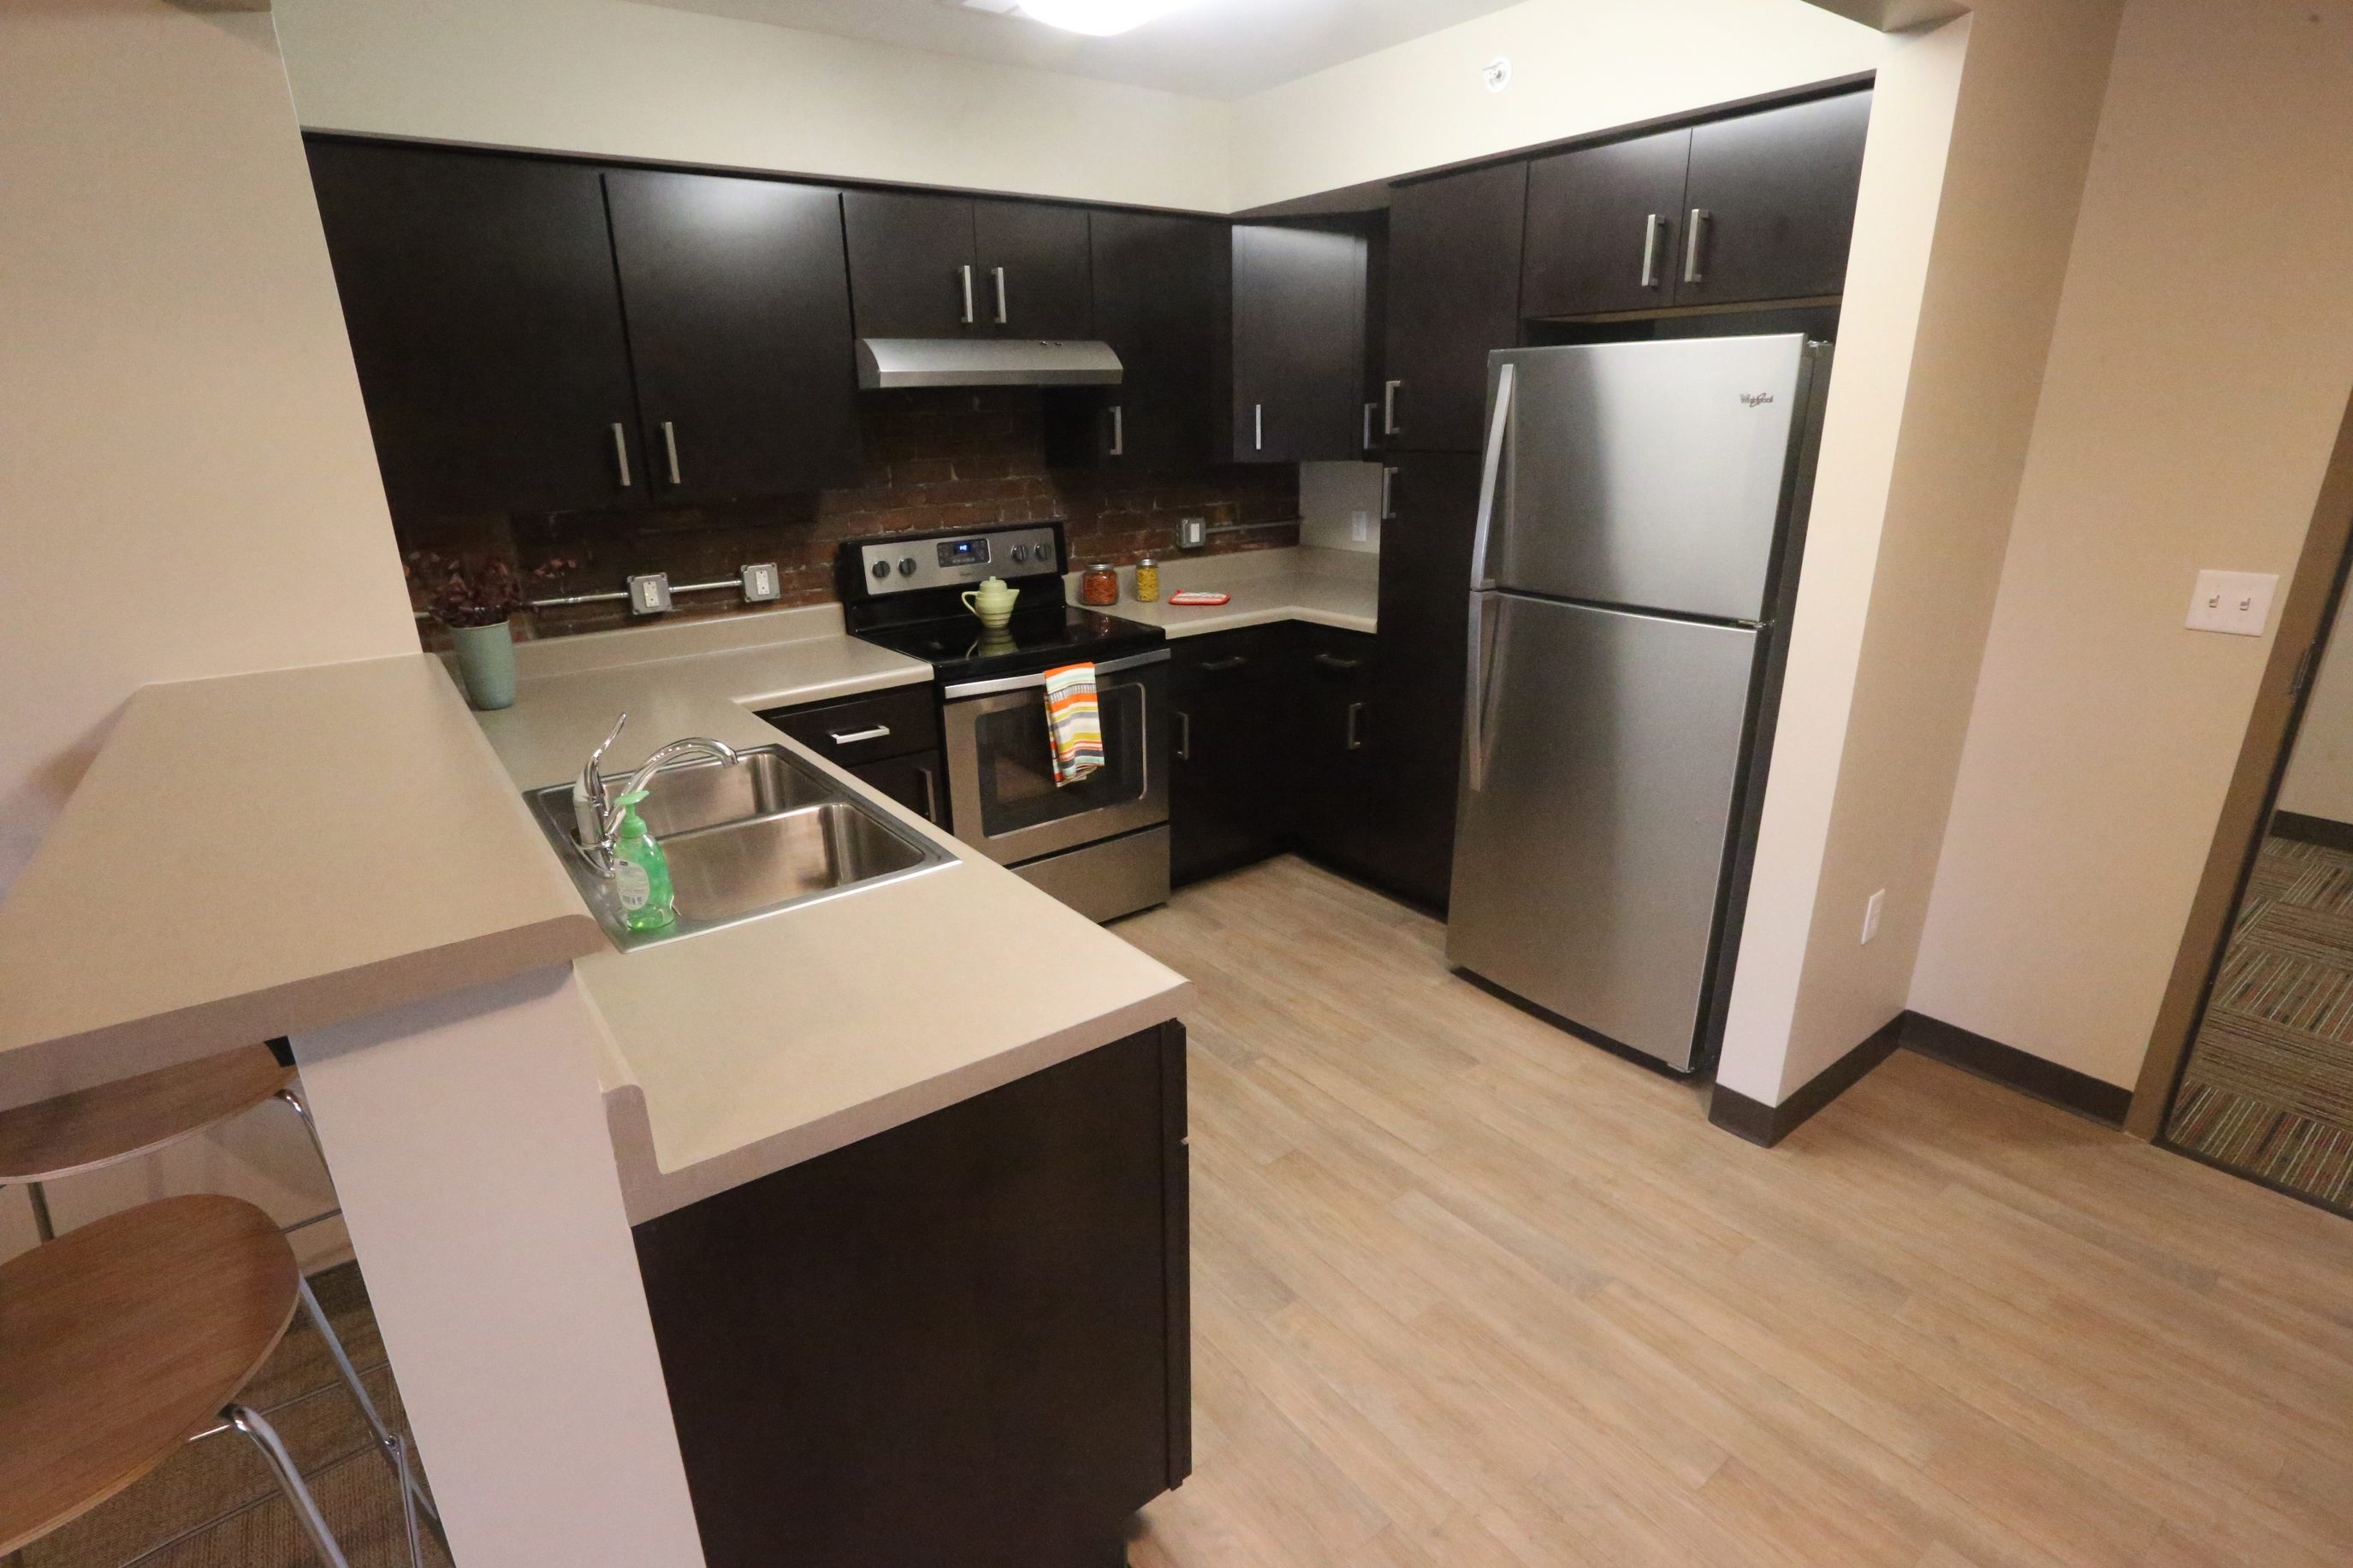 A kitchen at Evergreen Lofts, 392 Genesee St., the new low-income housing complex in downtown Buffalo. The former warehouse is now open for tenants, less than a year after the groundbreaking.